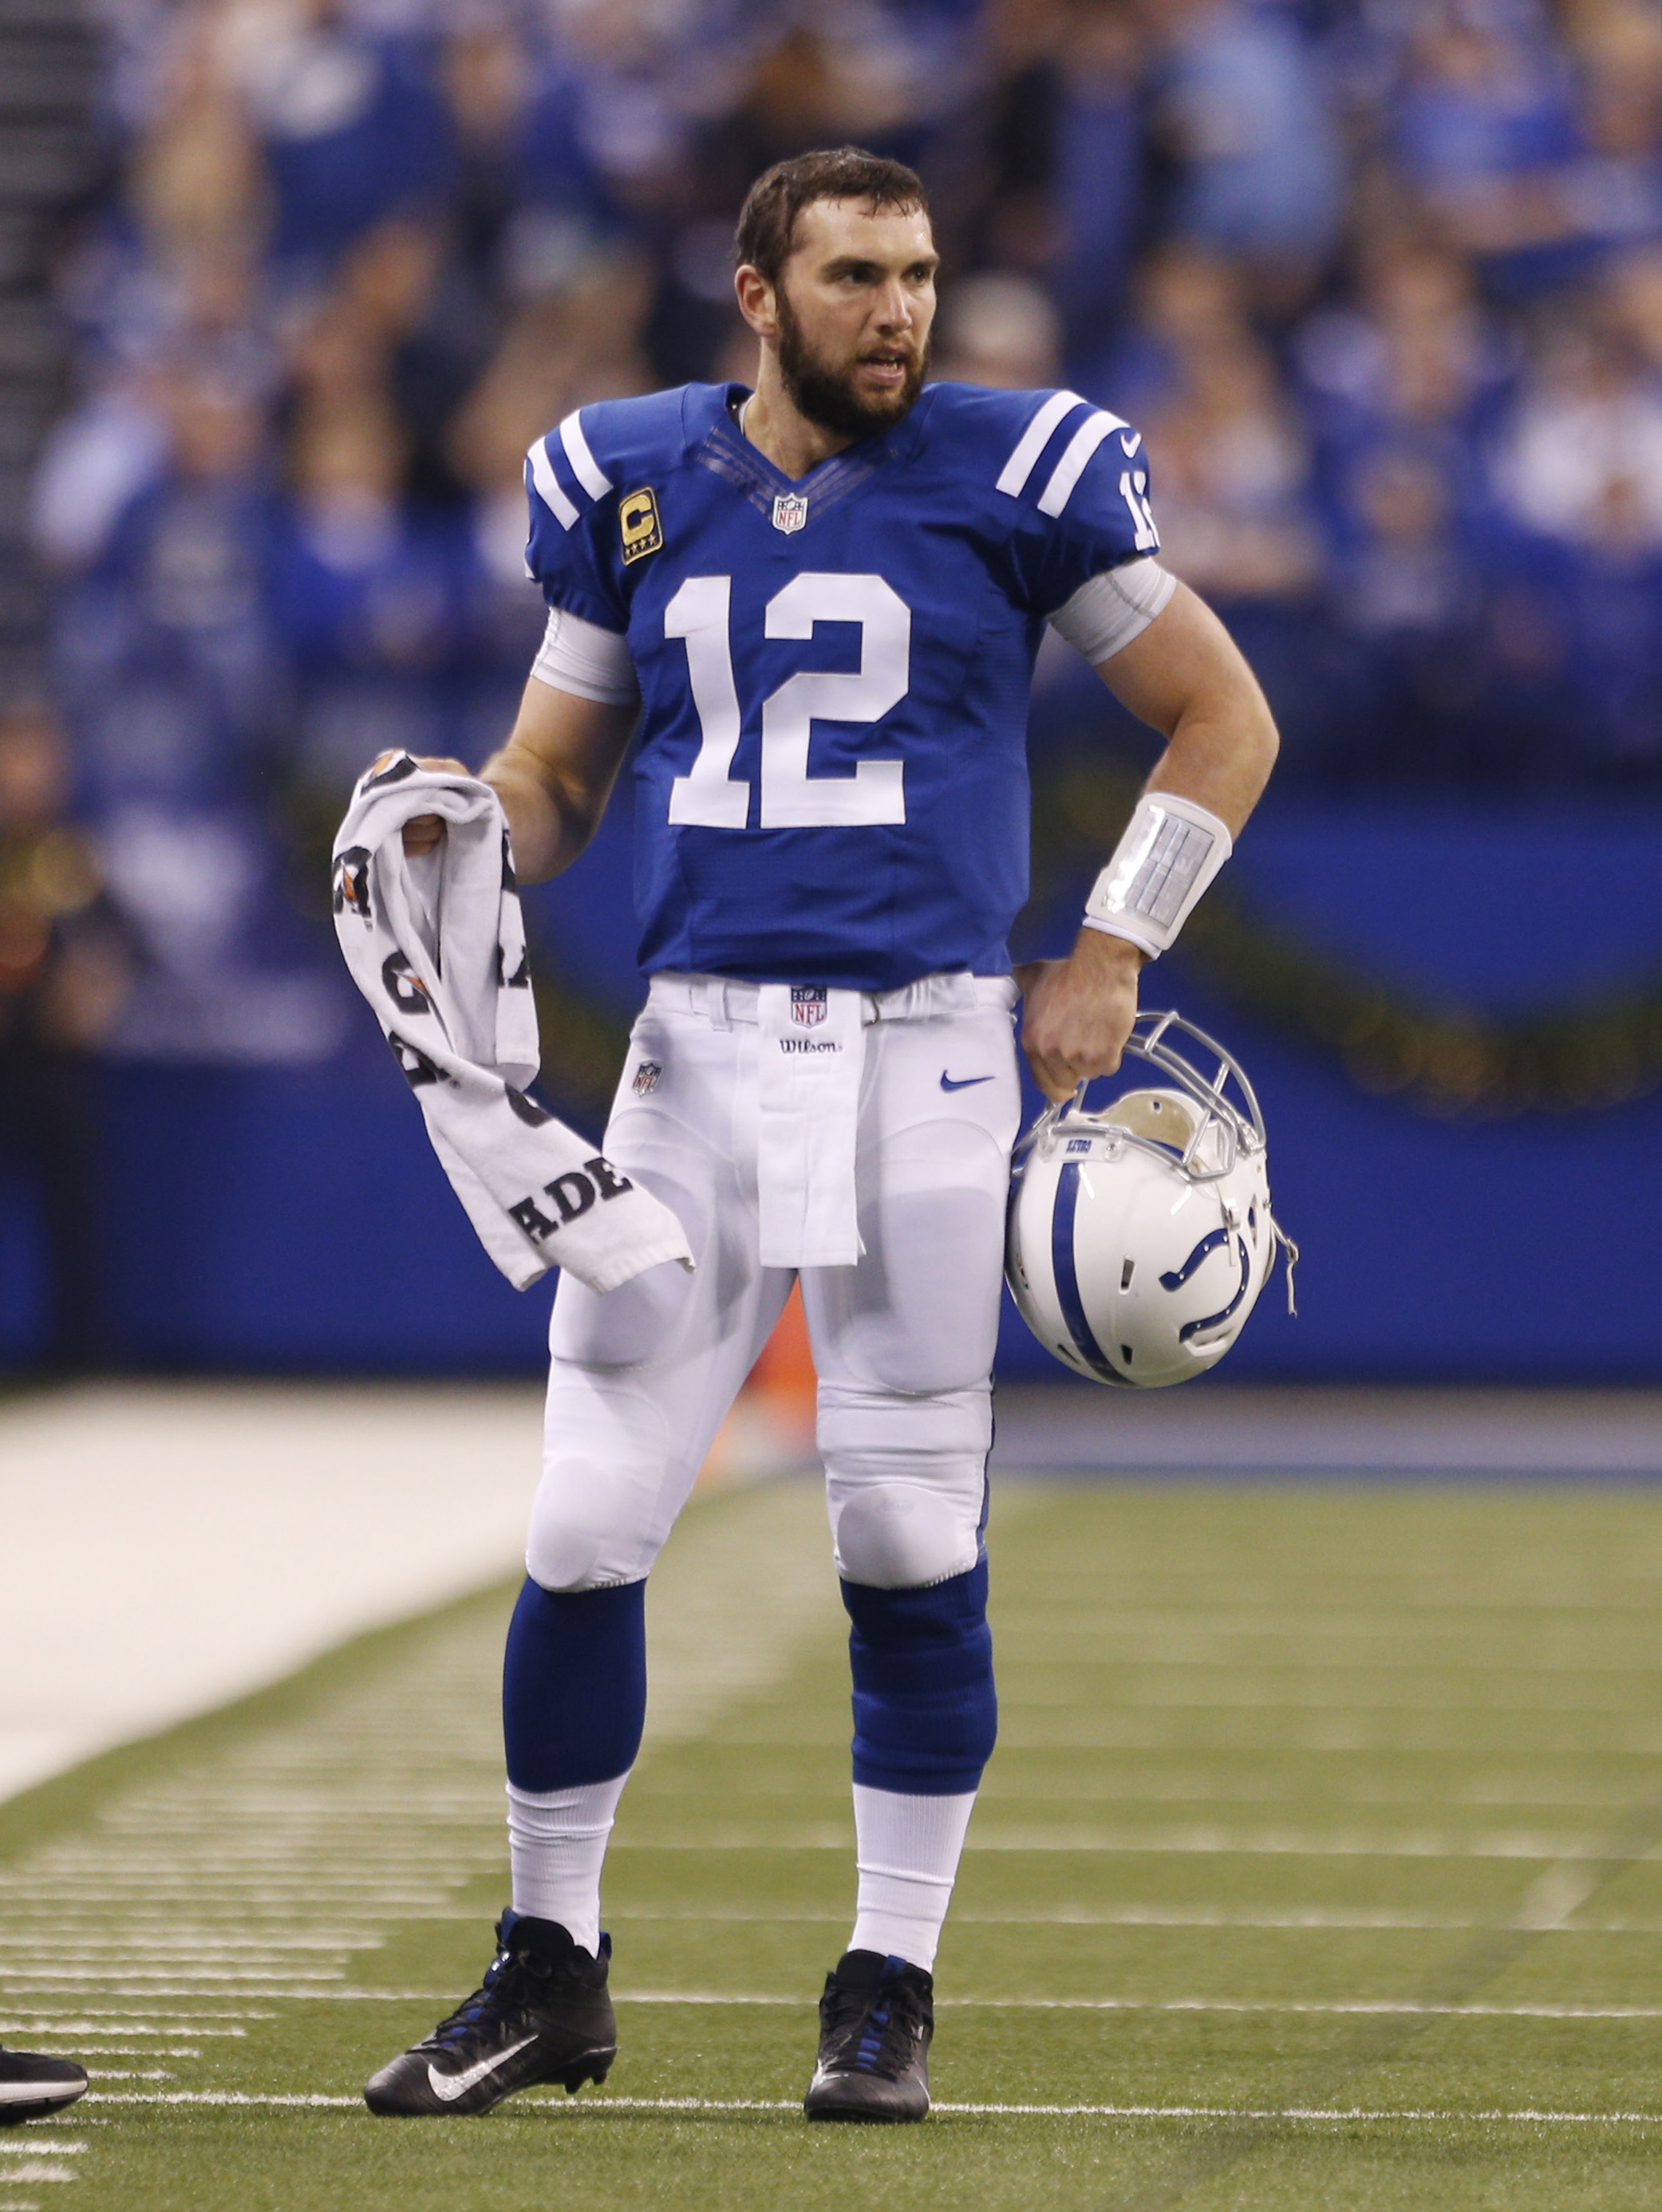 Dec 11, 2016; Indianapolis, IN, USA; Indianapolis Colts quarterback Andrew Luck (12) walks over to the sidelines as a play is reviewed by officials during a game against the Houston Texans at Lucas Oil Stadium. Mandatory Credit: Brian Spurlock-USA TODAY Sports